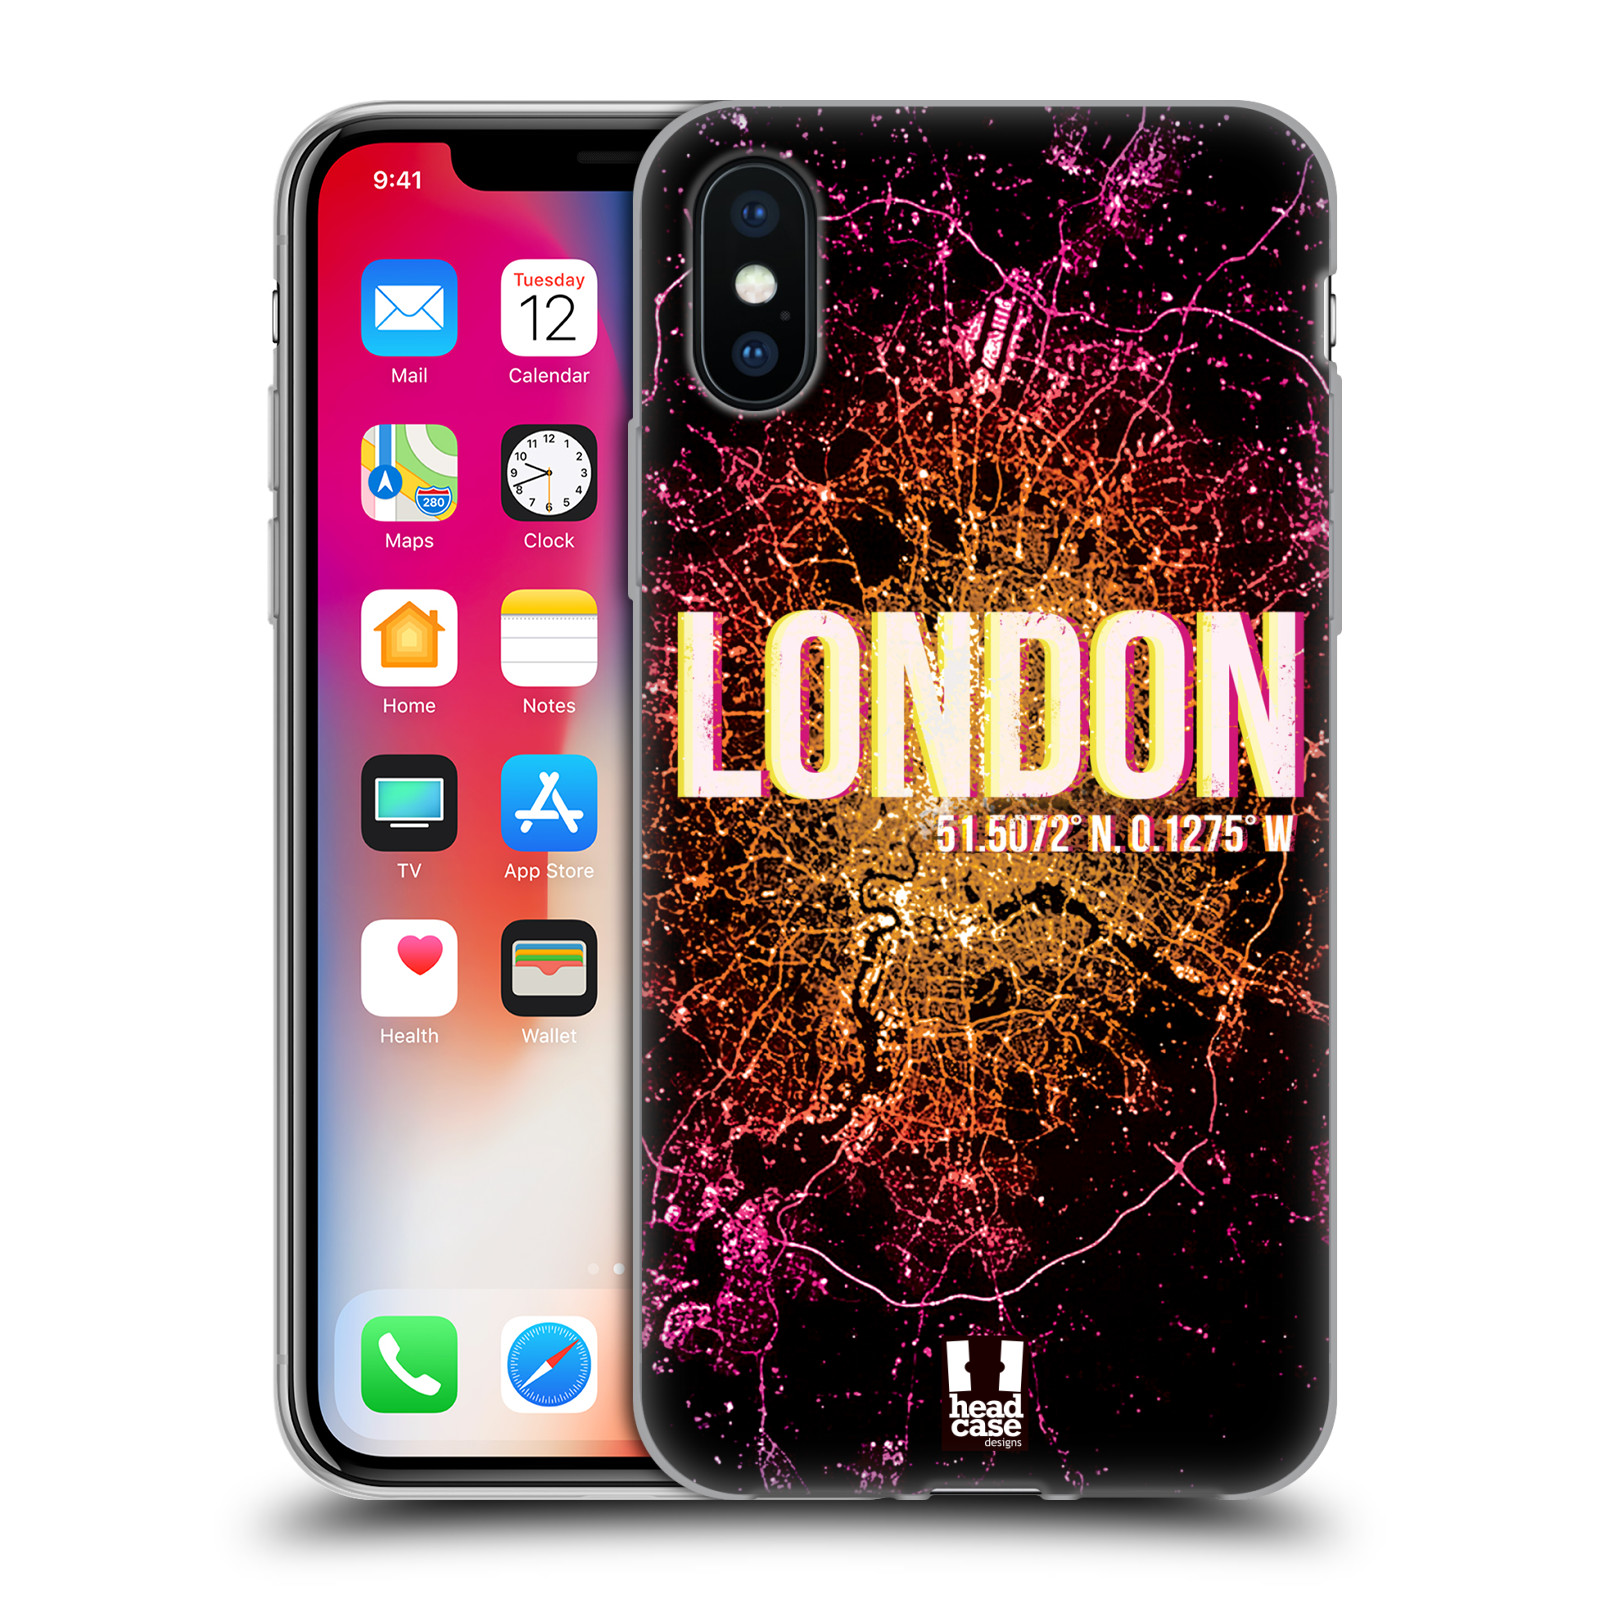 HEAD-CASE-DESIGNS-CITY-LIGHTS-SOFT-GEL-CASE-FOR-APPLE-iPHONE-PHONES